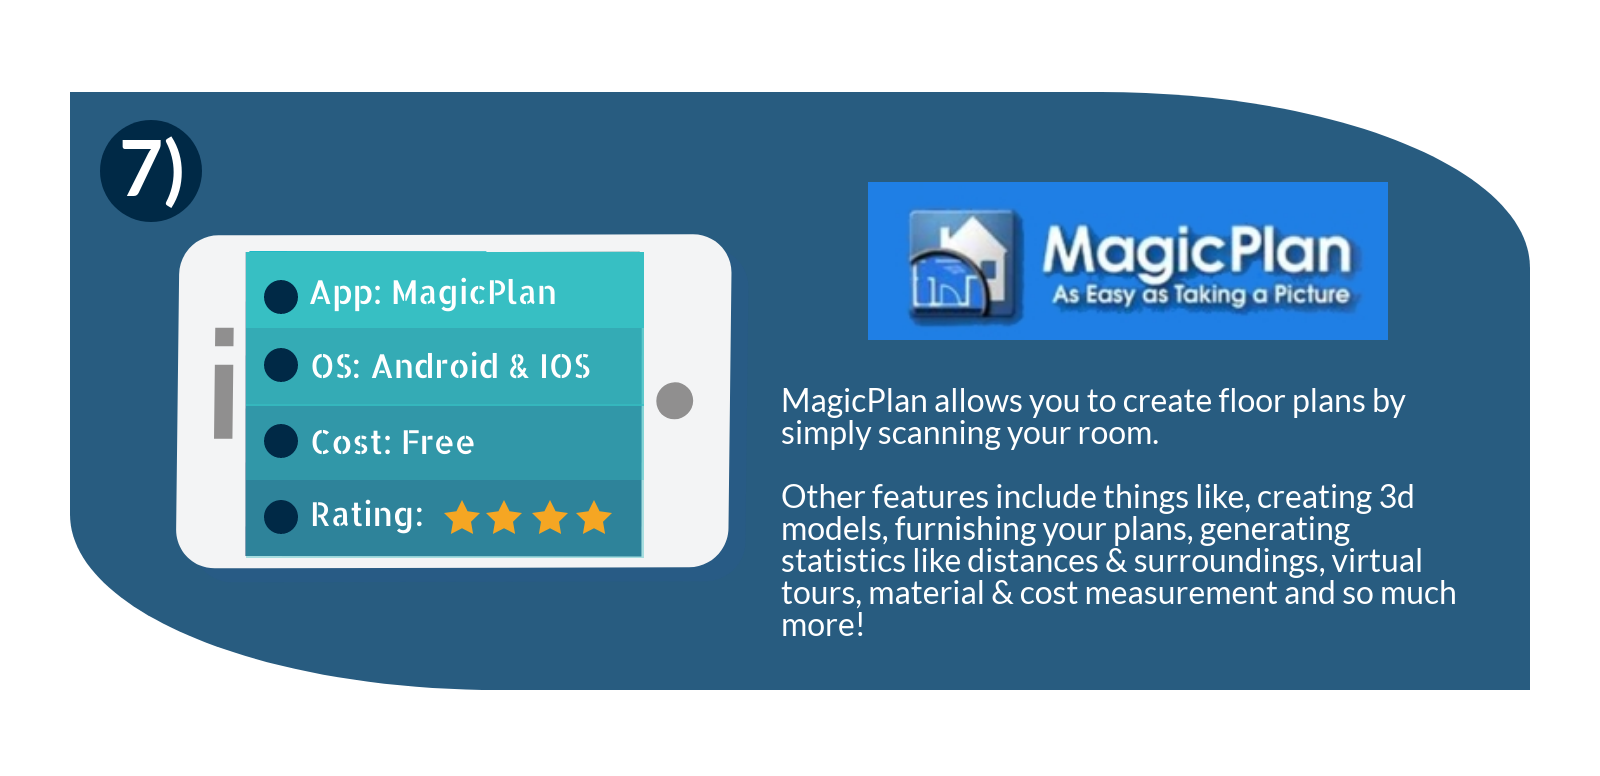 Magic plan is a great app that allows you to create floor plans